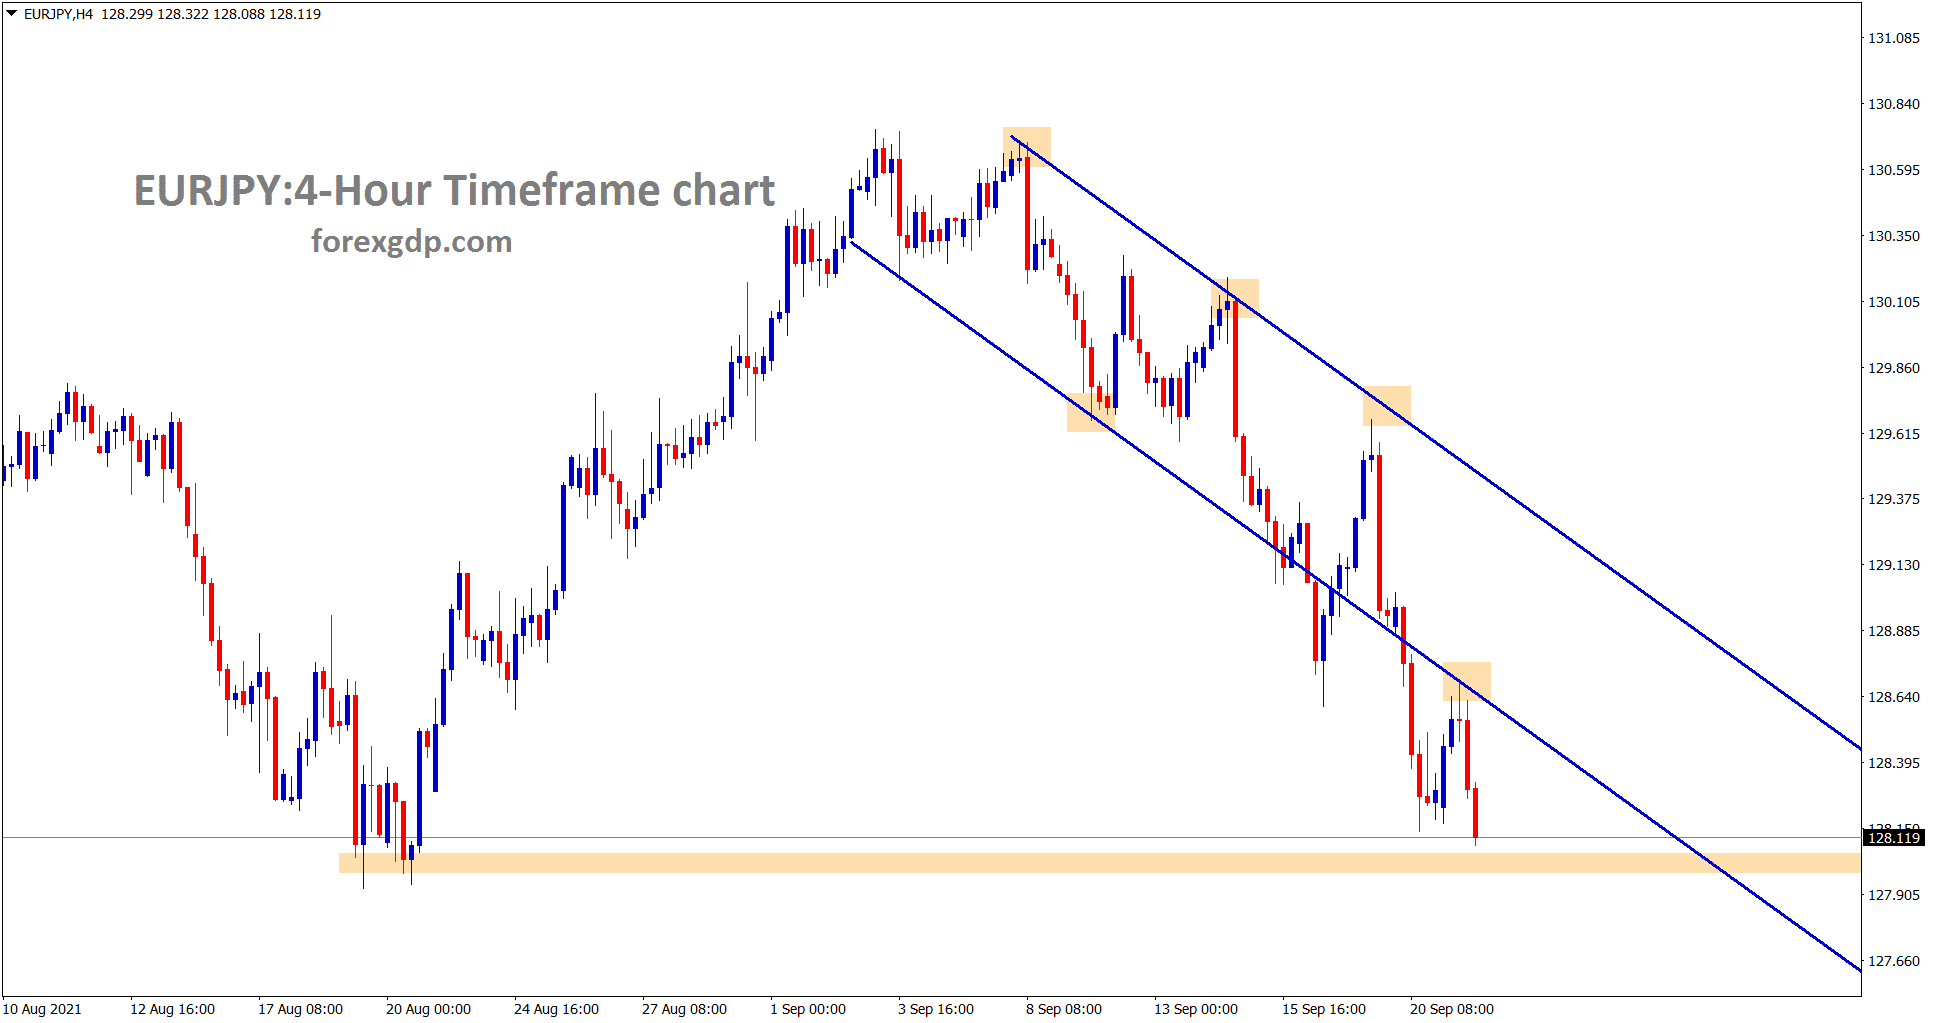 EURJPY is going to reach the horizontal support area wait for reversal or breakout